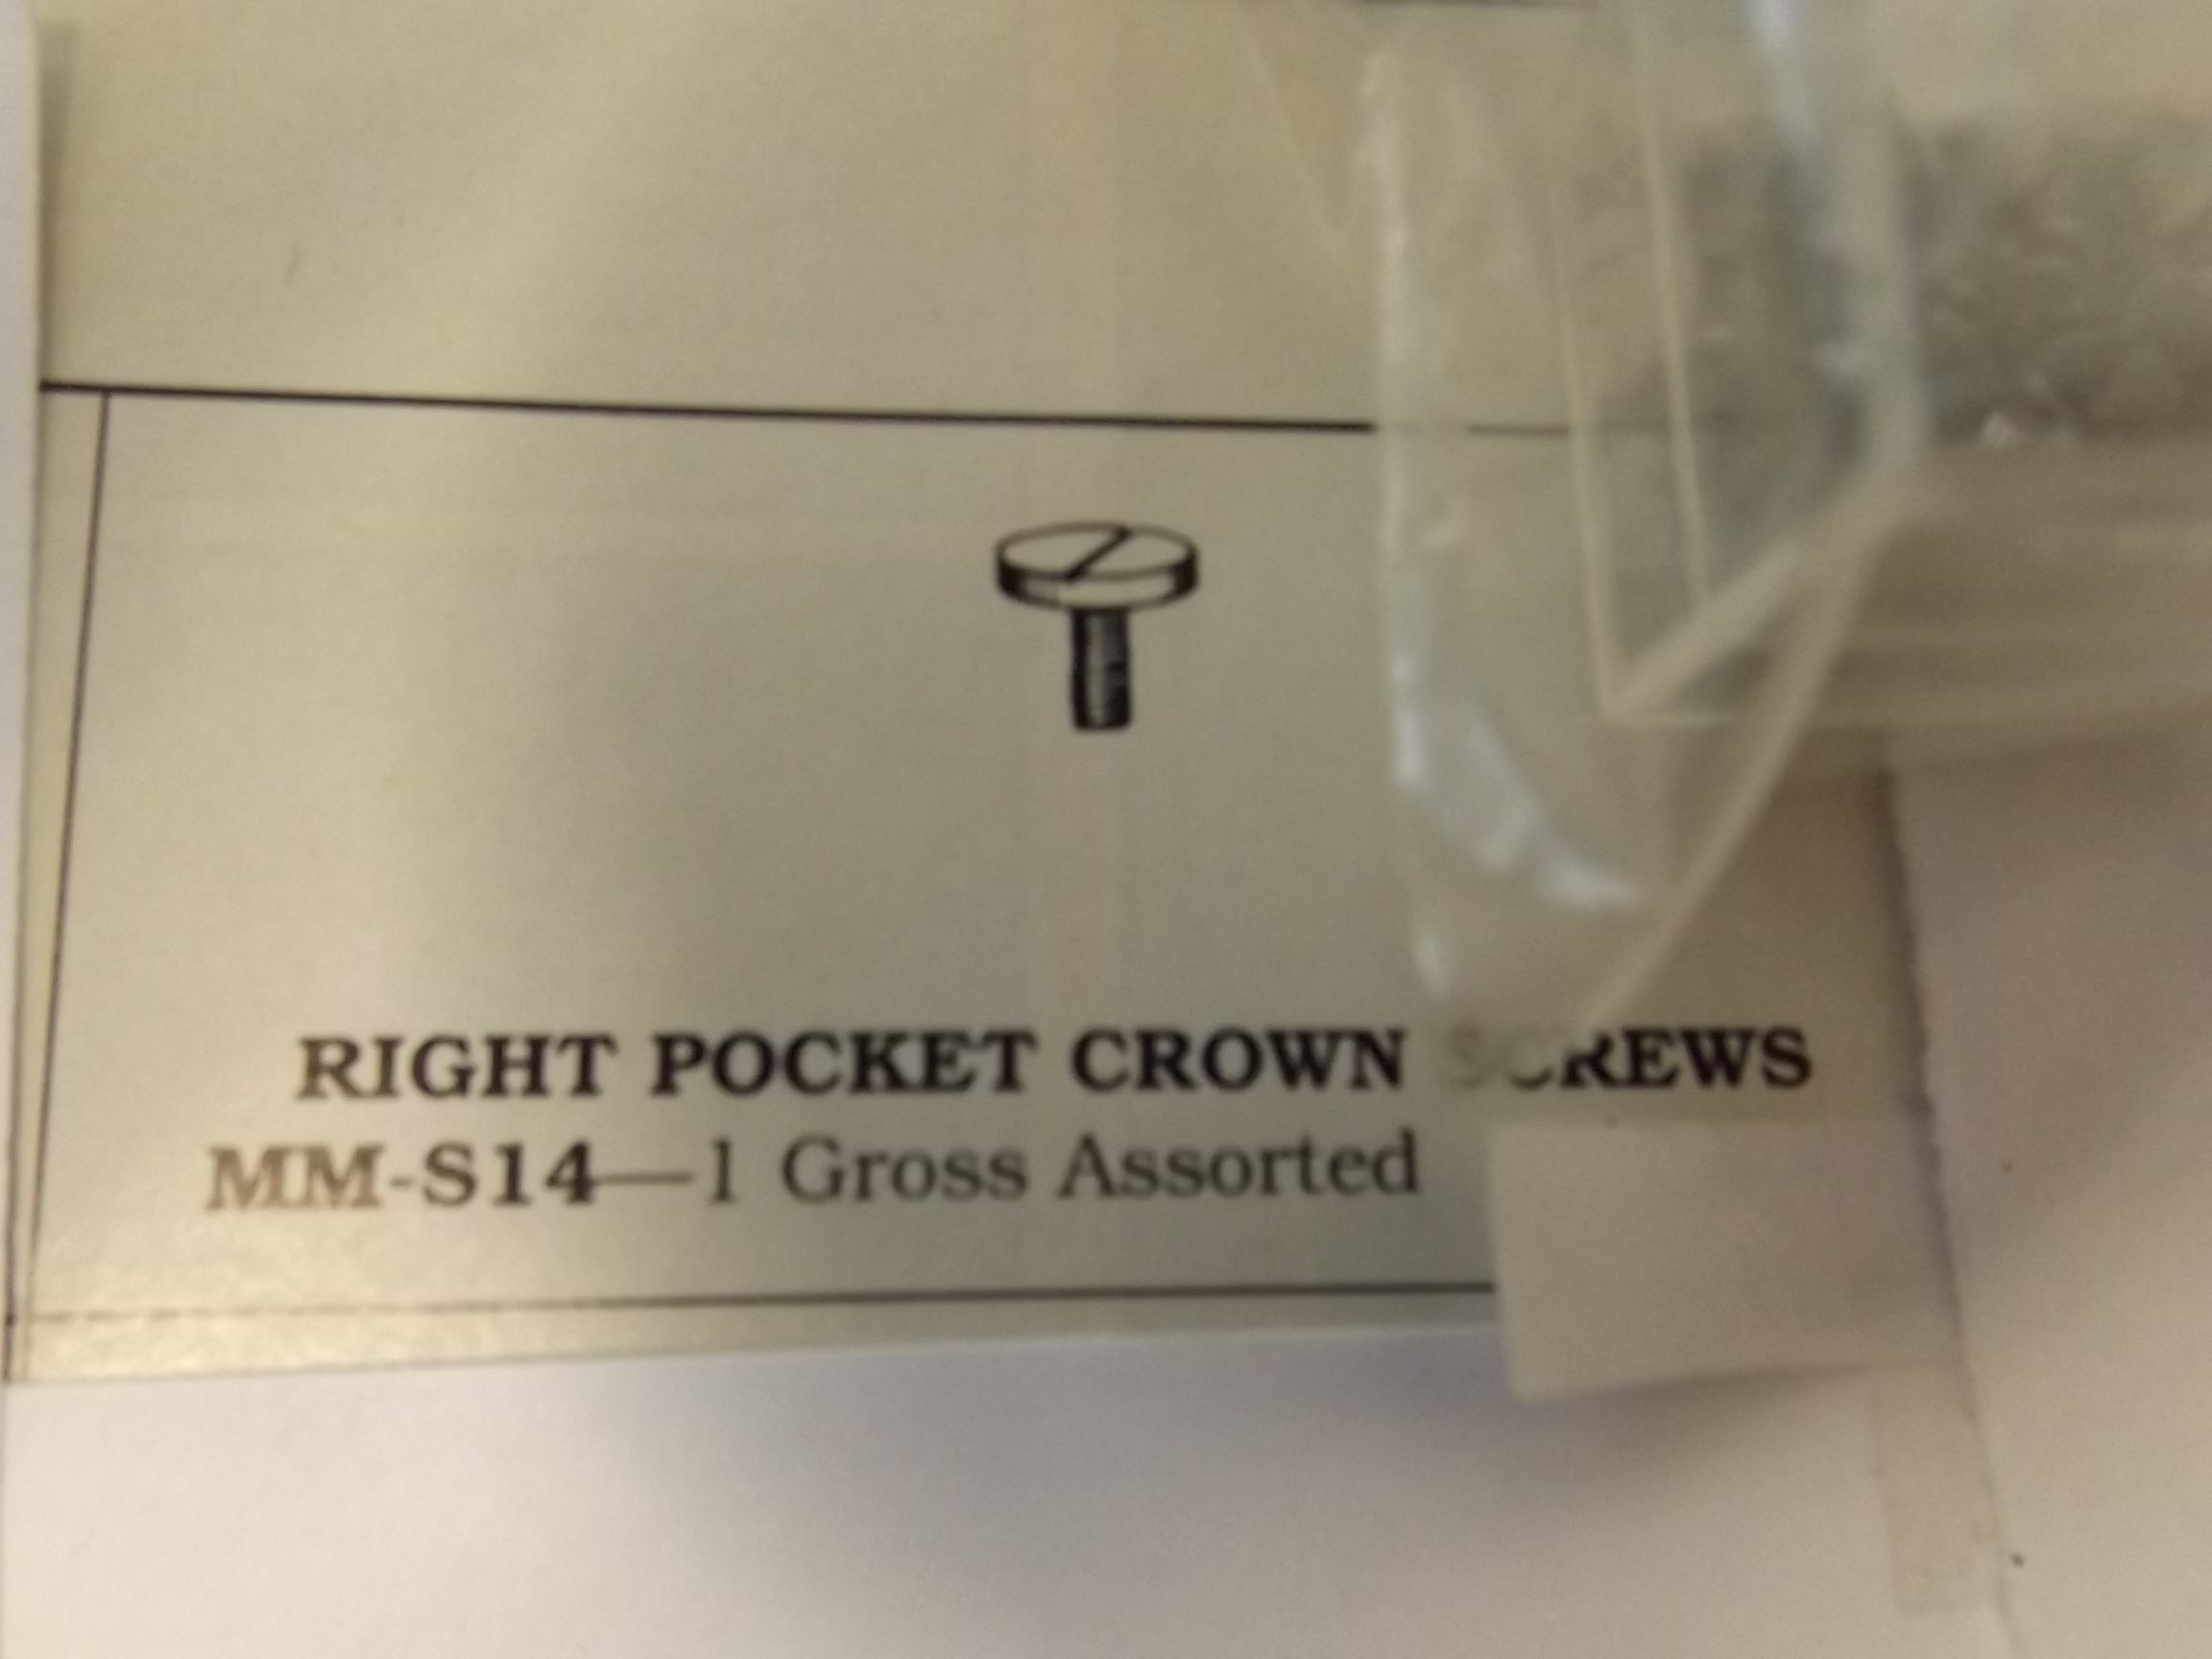 MM-S14 Right Pocket Crown Screws- 1 Gross- Bestfit- One Only!